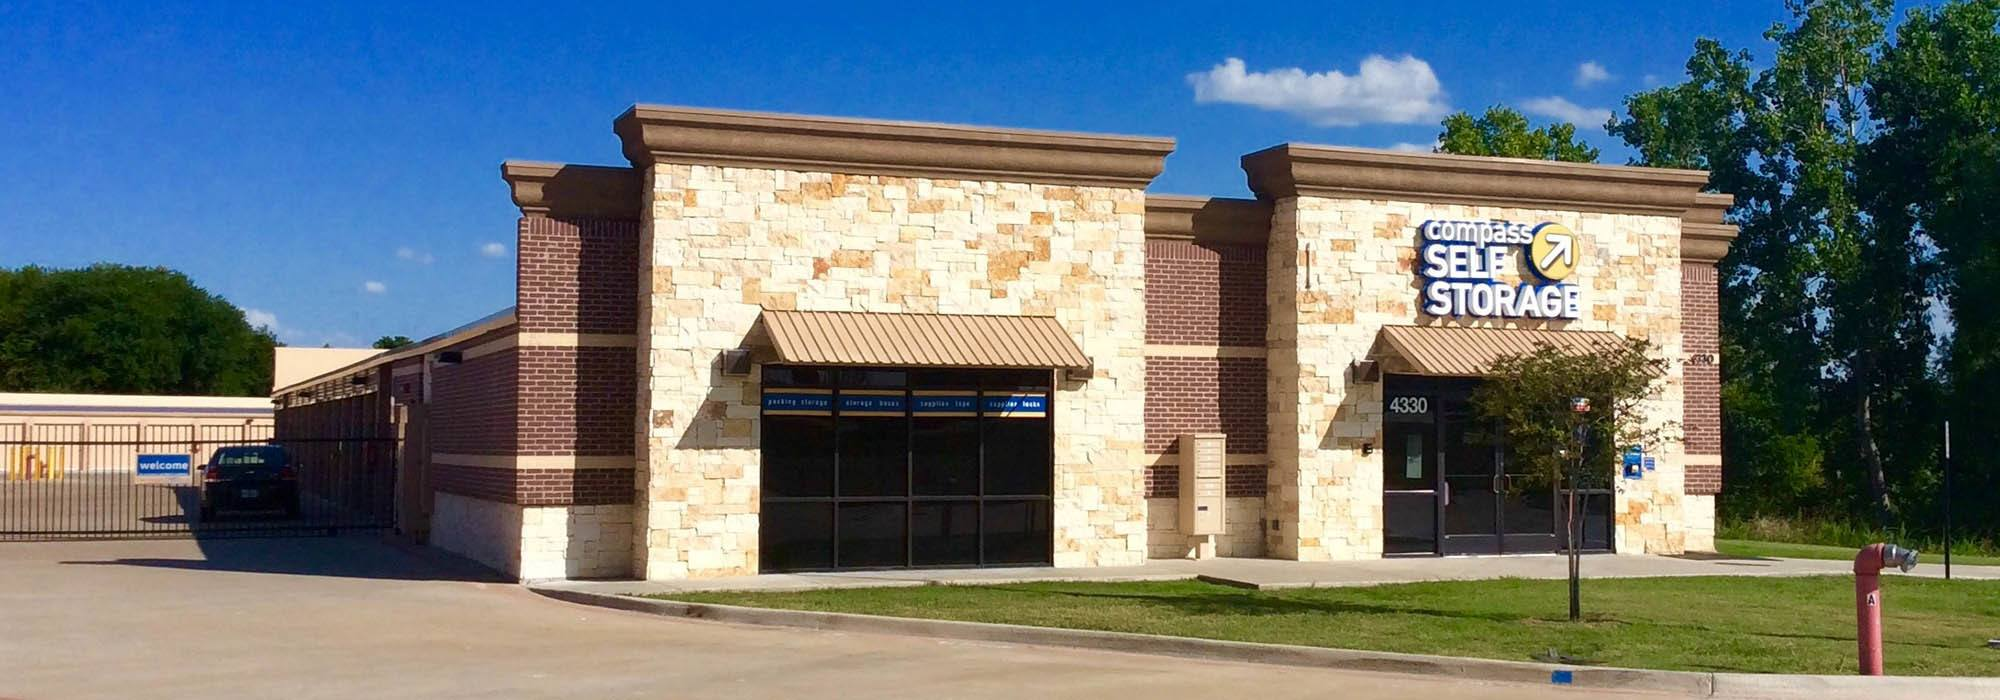 Self storage in Grand Prairie TX